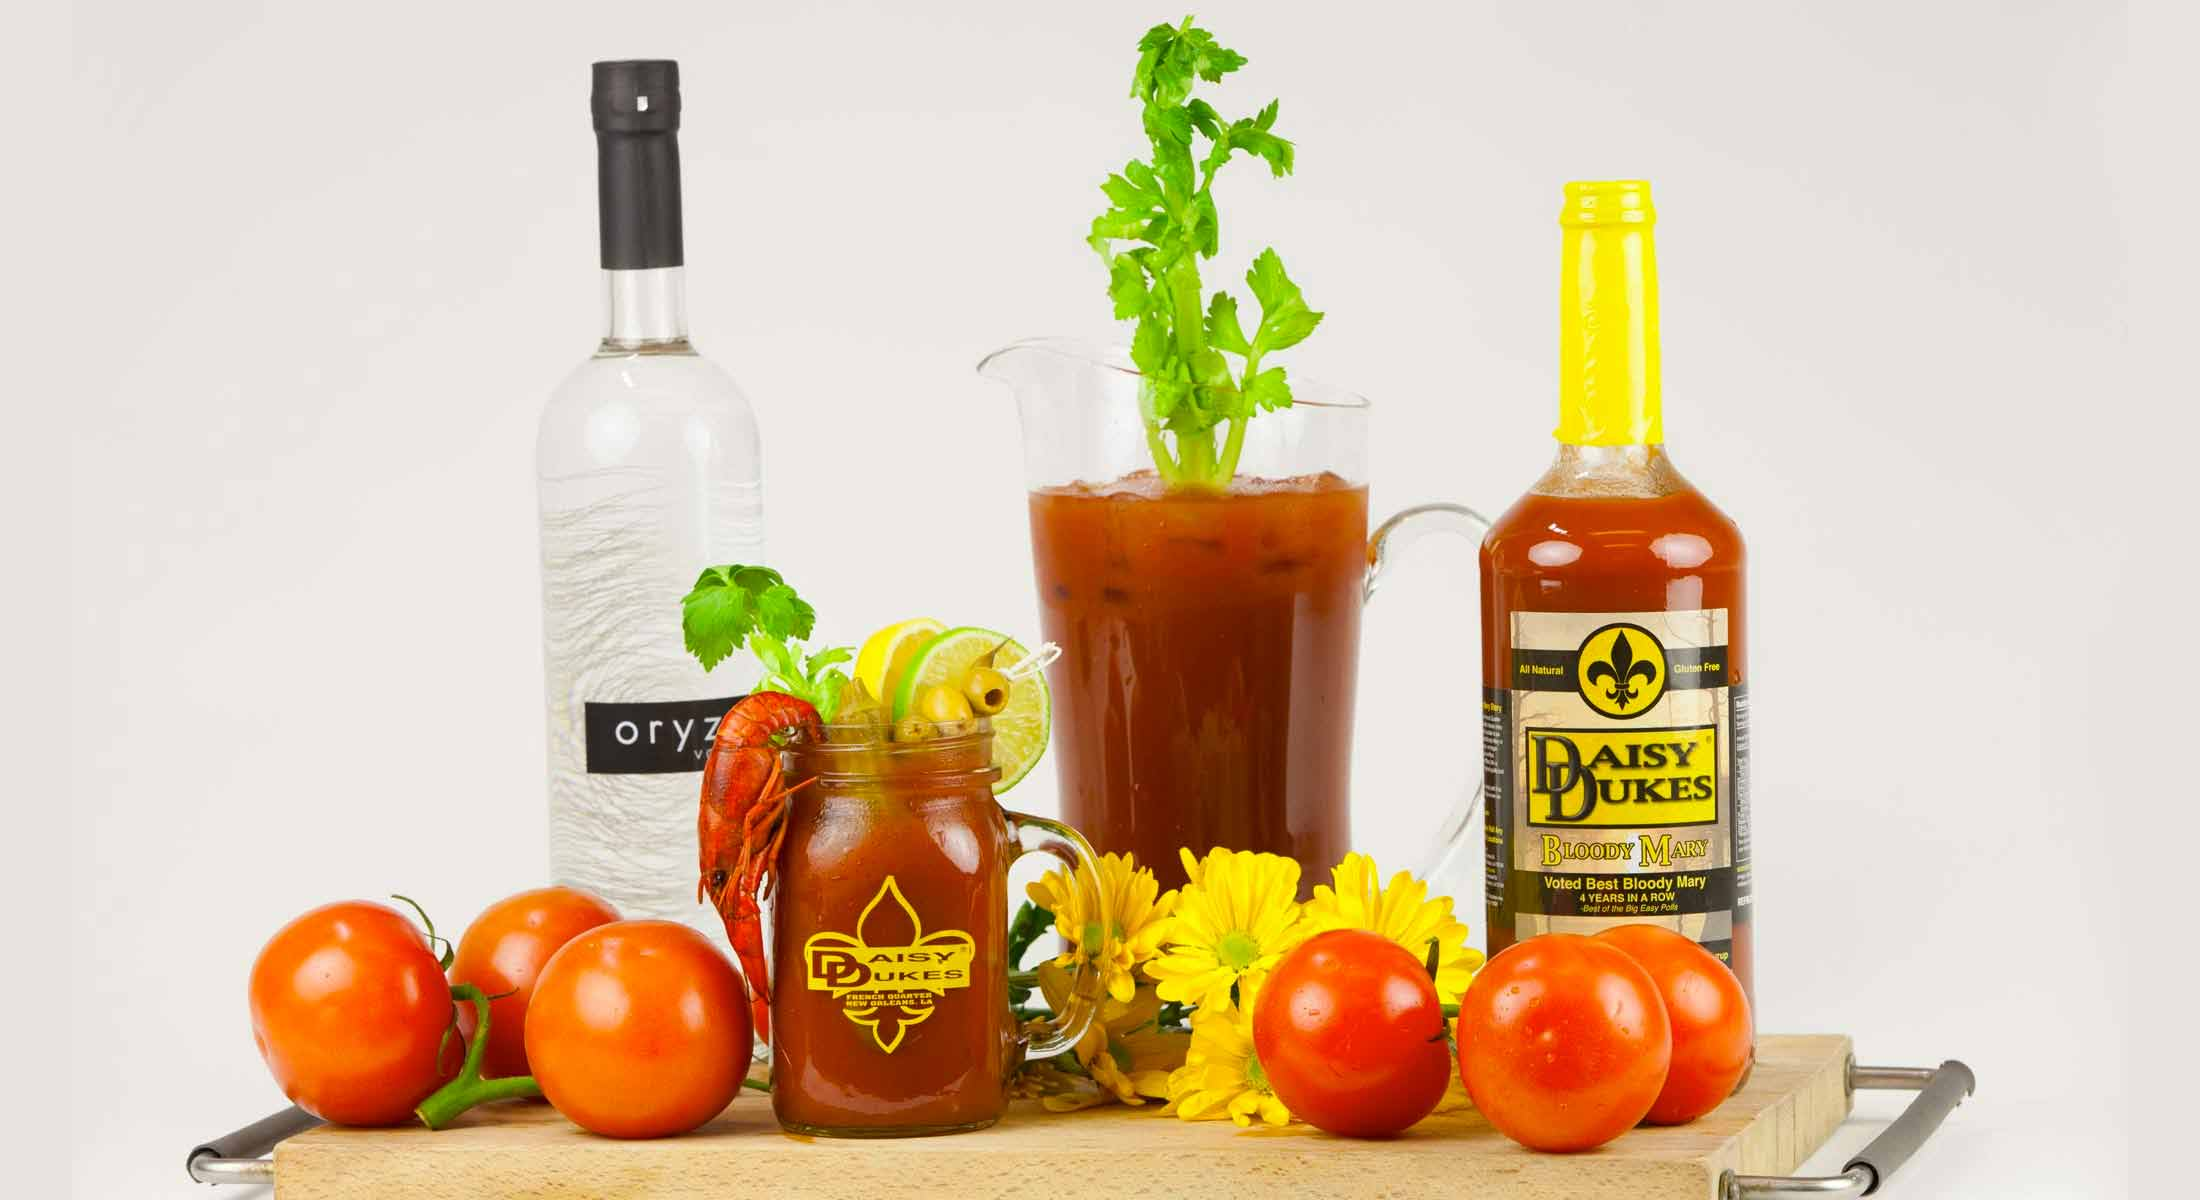 daisy-dukes-bloody-mary-mix-with-fresh-ingrediants2